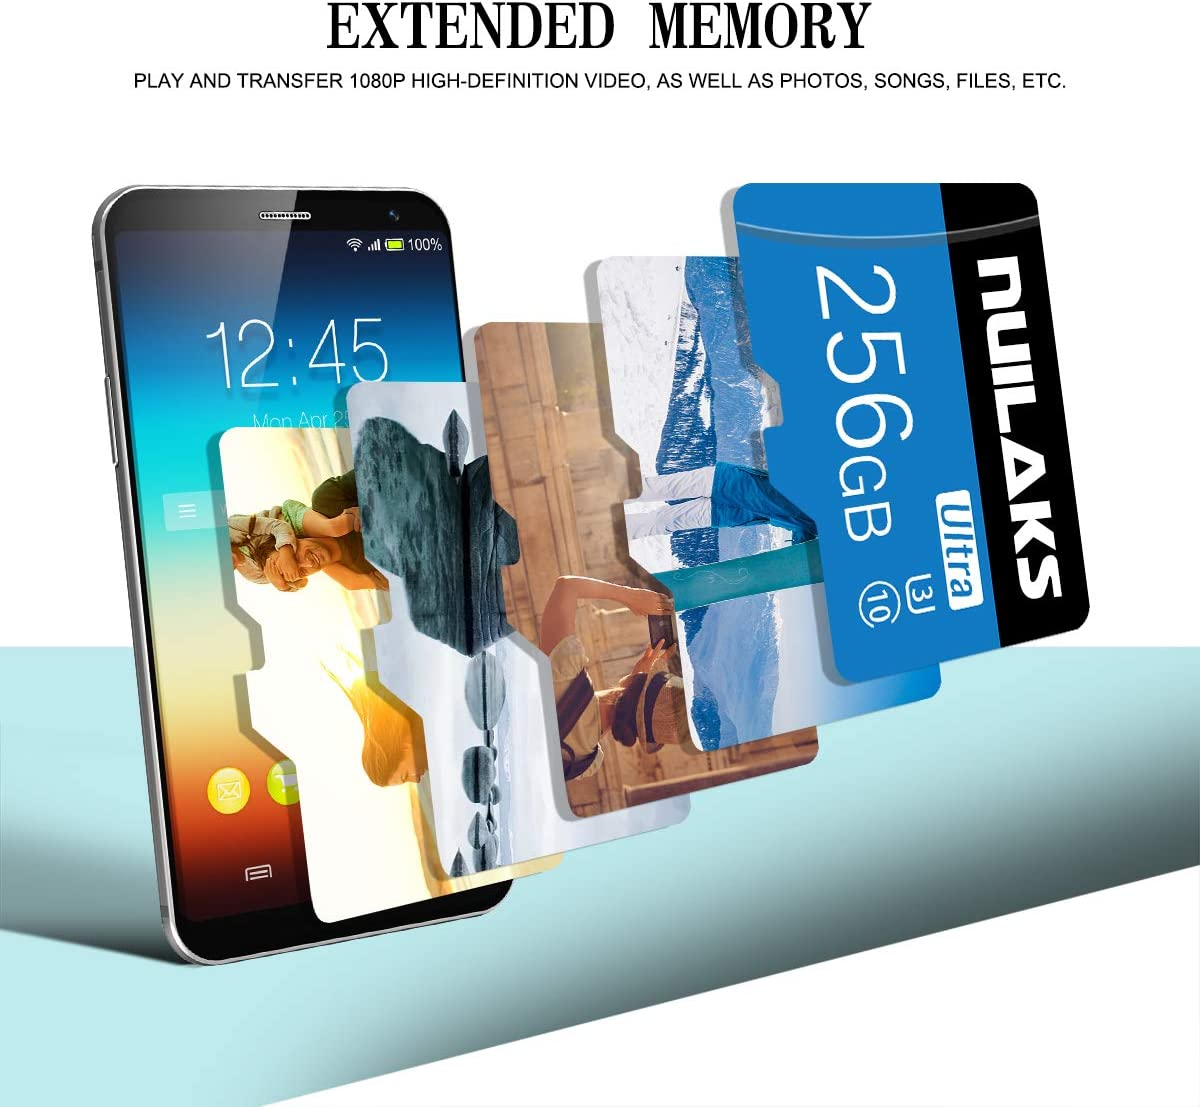 256GB Micro SD Card with Adapter (Class 10 High Speed) SD Memory Cards for Camera, TF Memory Card for Phone Computer Game Console, Dash Cam, Camcorder, Surveillance, E-Reader, Drone